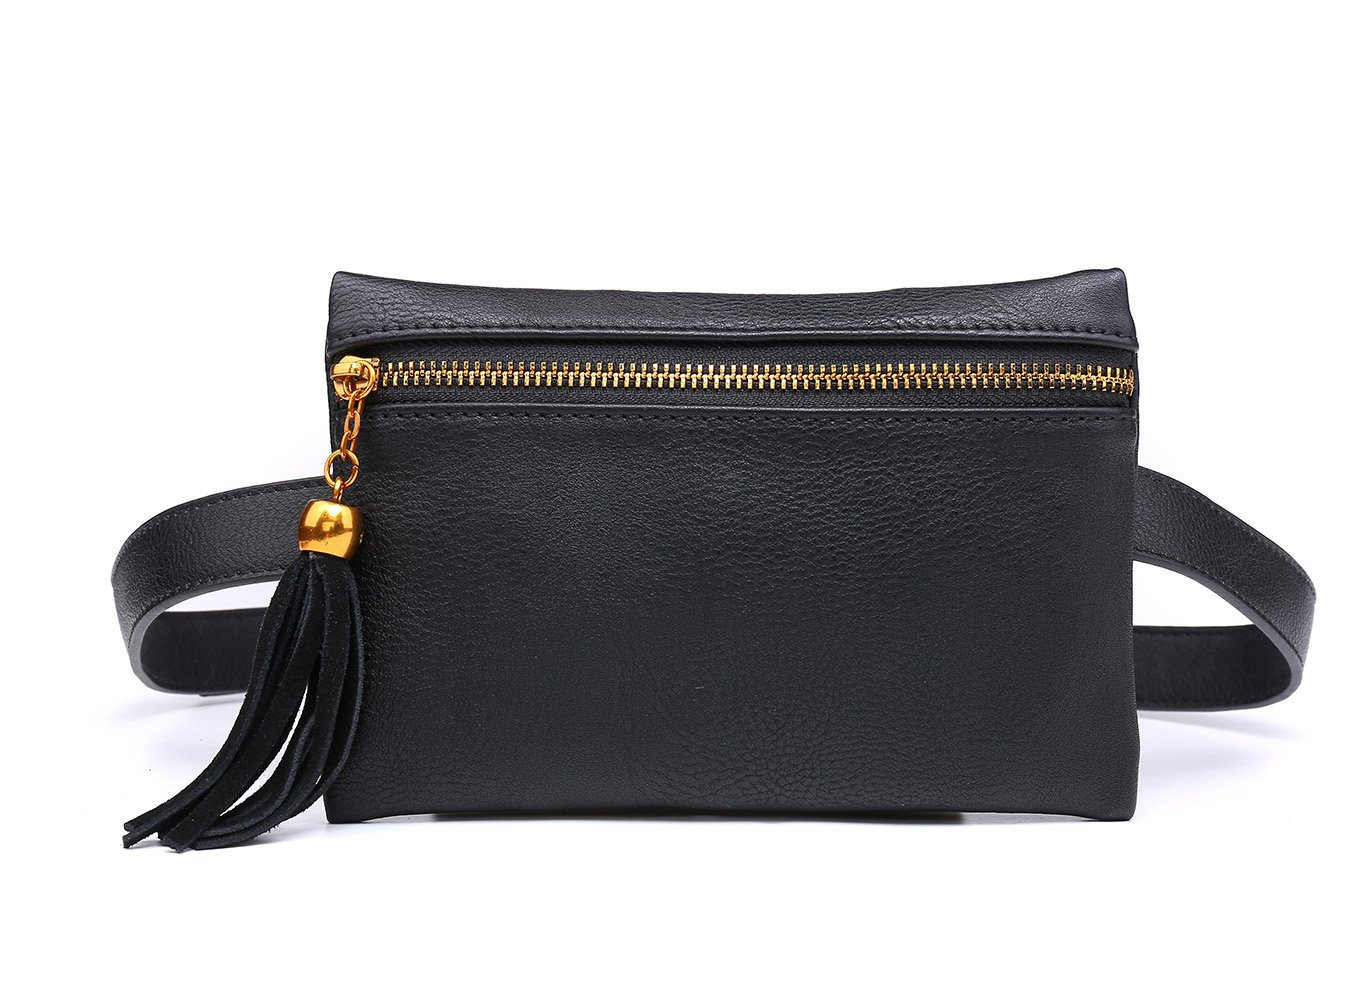 Women Small Leather Handbag Stylish Waist Bag Travel Phone Pouch Security Wallet Black